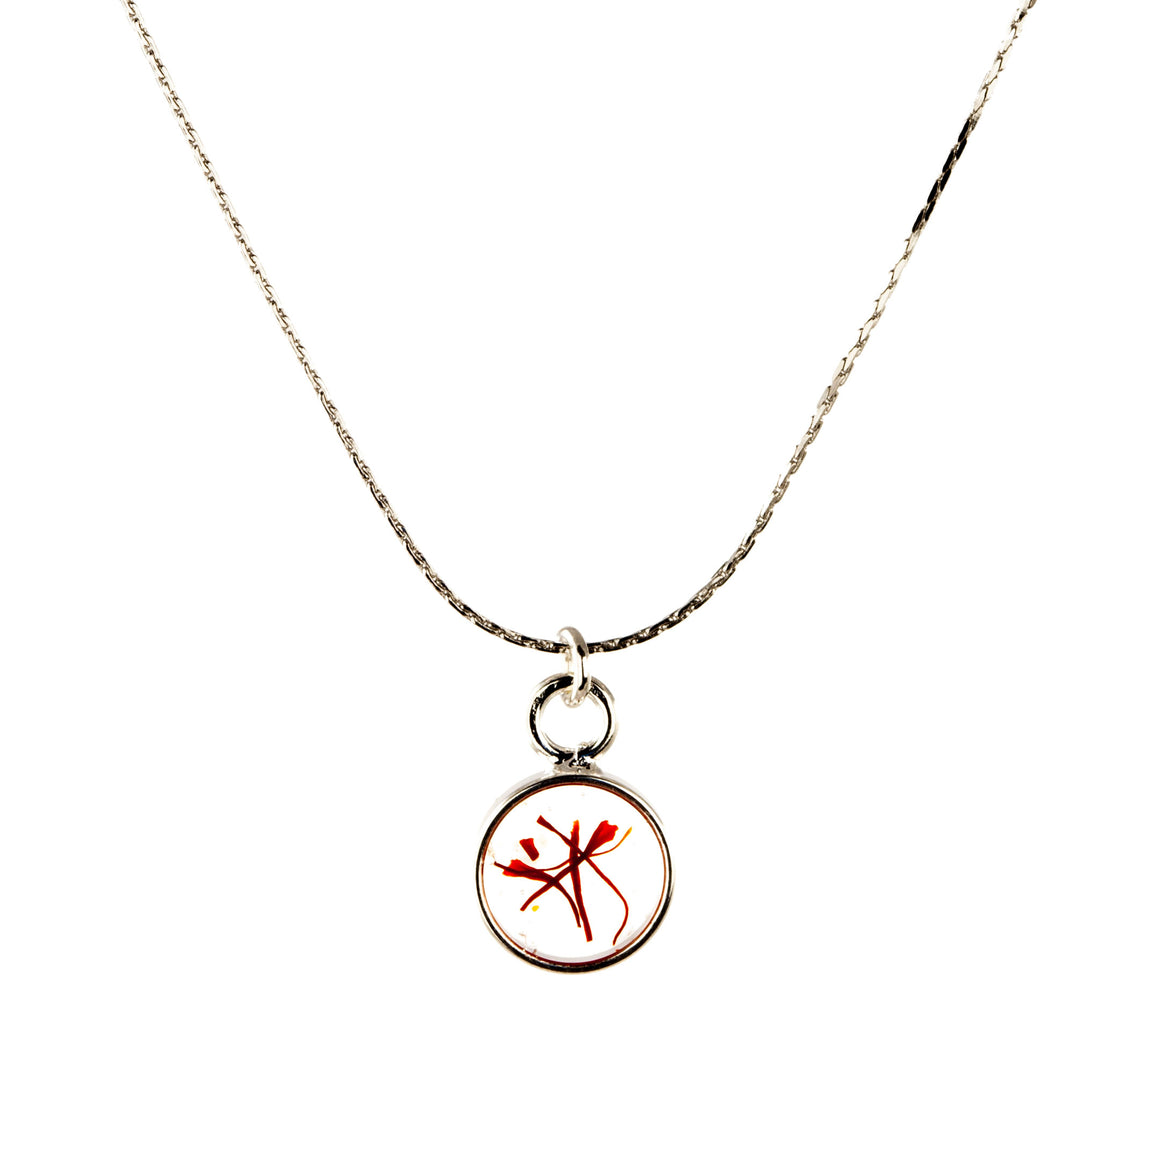 Saffron | Small Circle Necklace